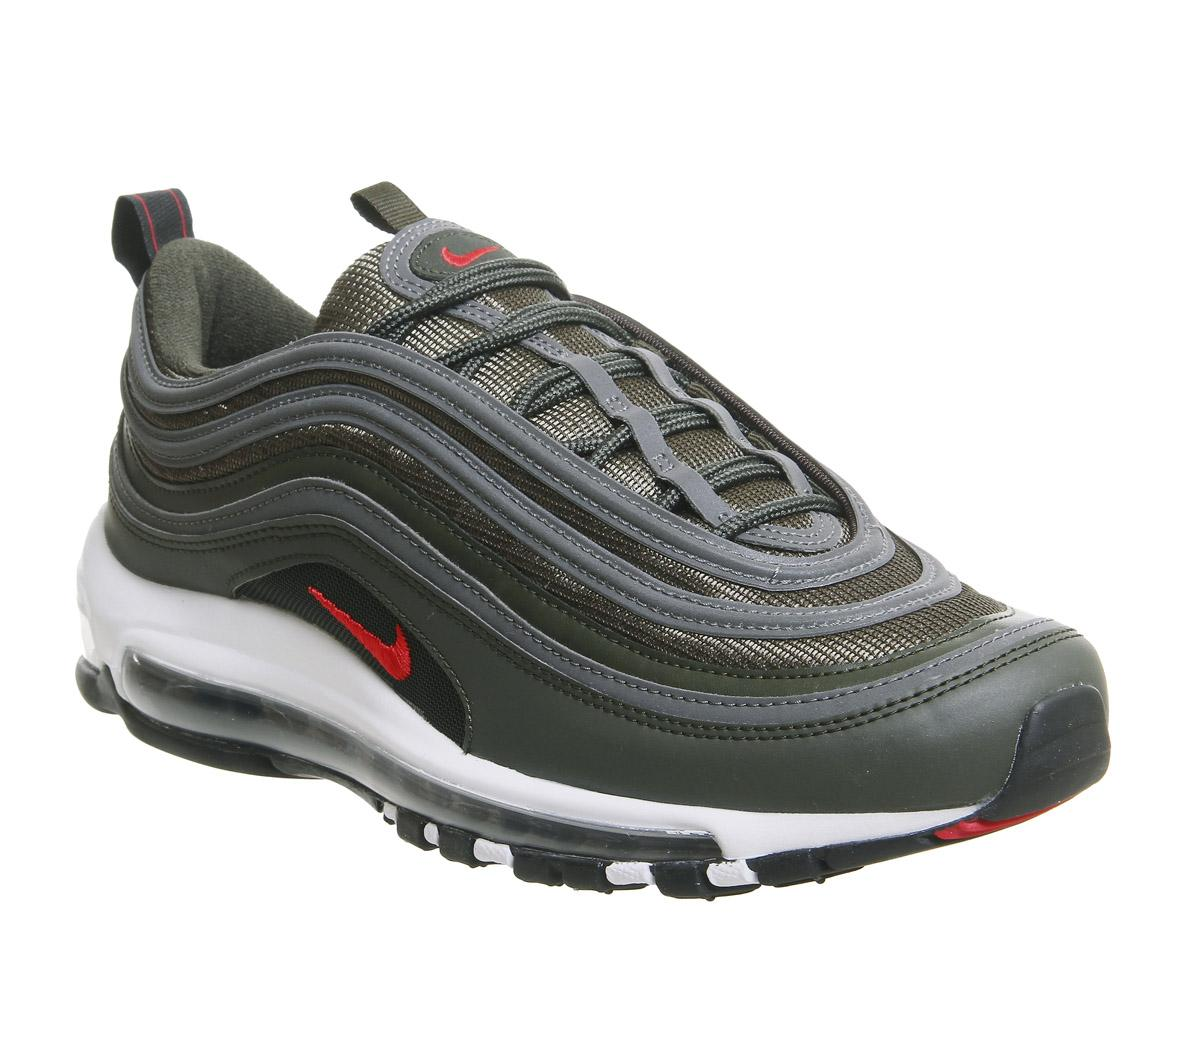 Nike Air Max 97 Trainers Sequoia